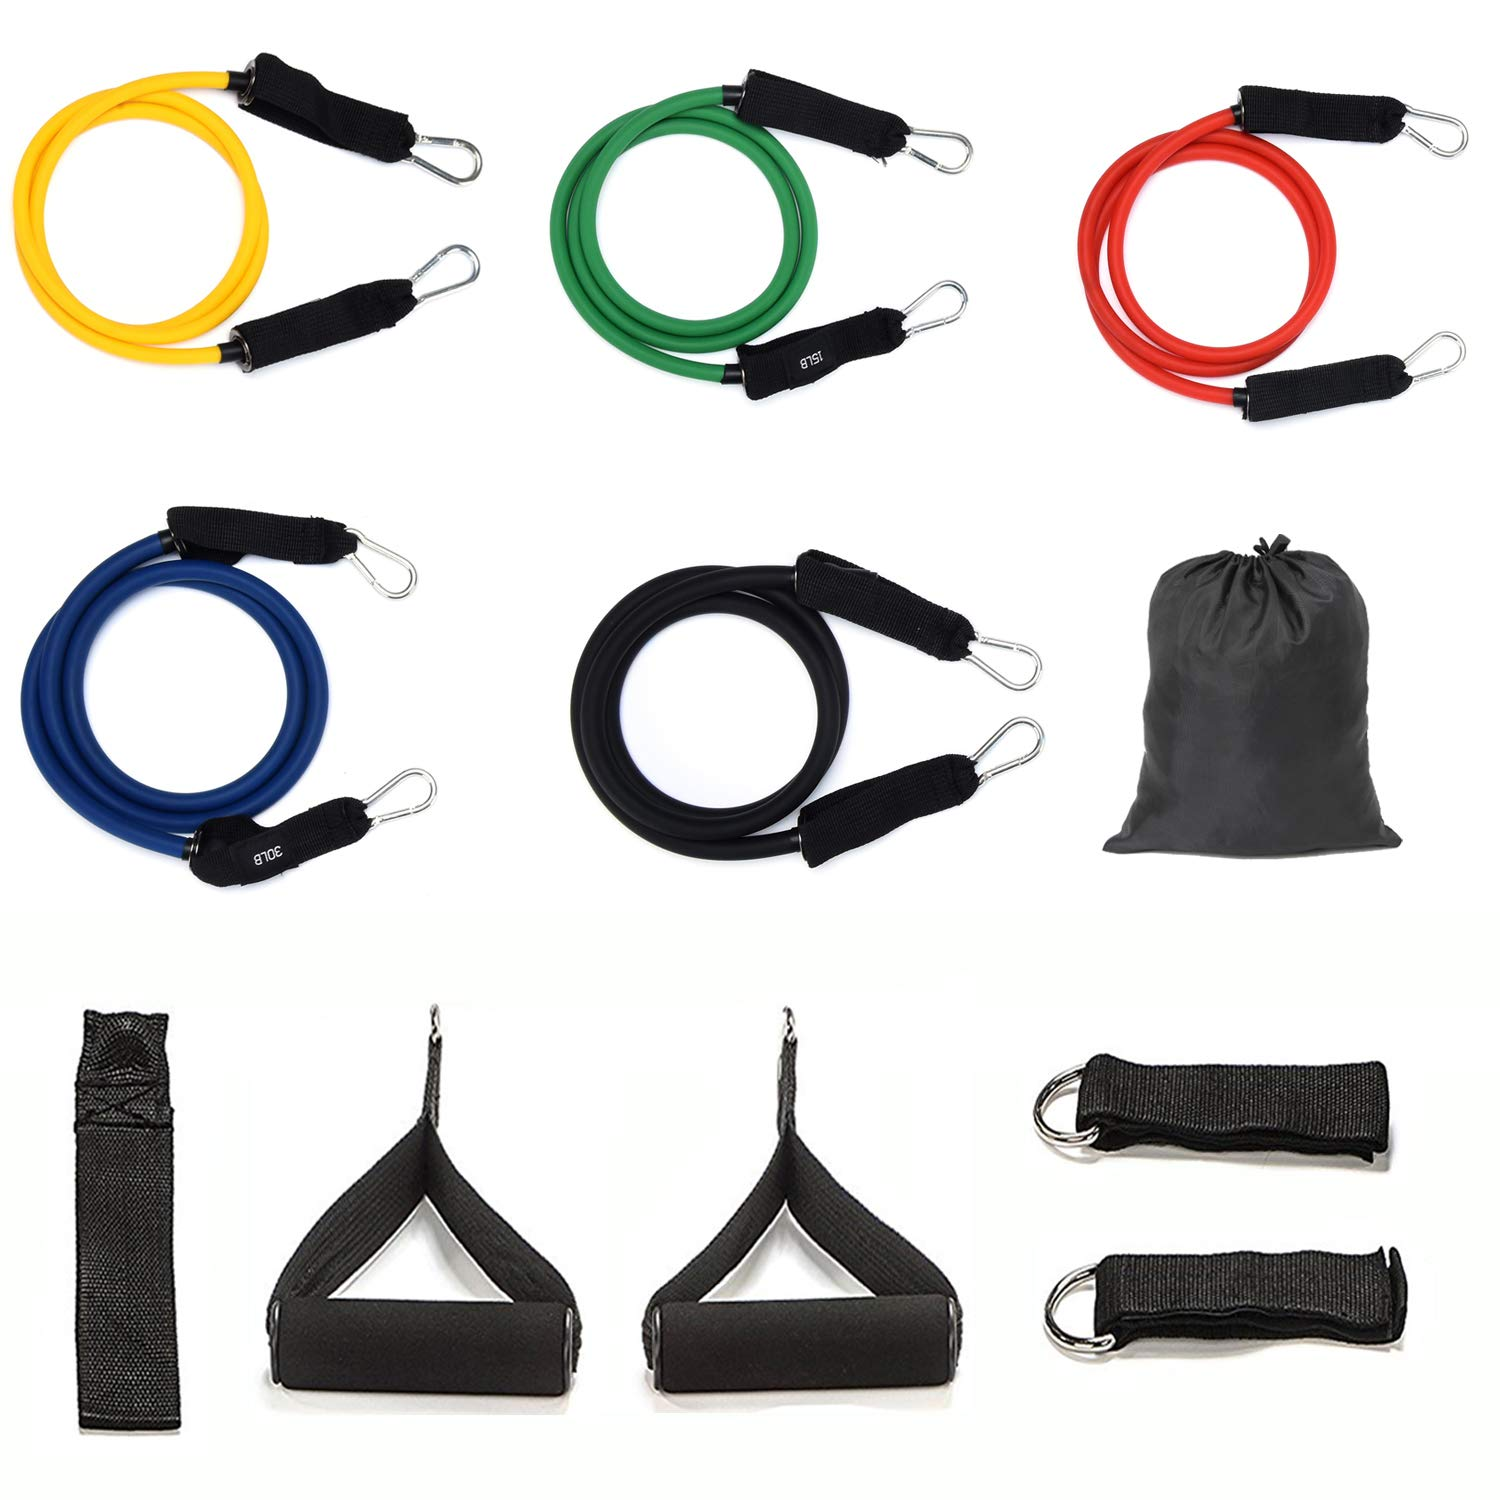 Resistance Band Exercise Sets with Door Anchor/Ankle Straps/Handles/Carry Bag/Instruction Book for Total Body Exercise … GOTODO